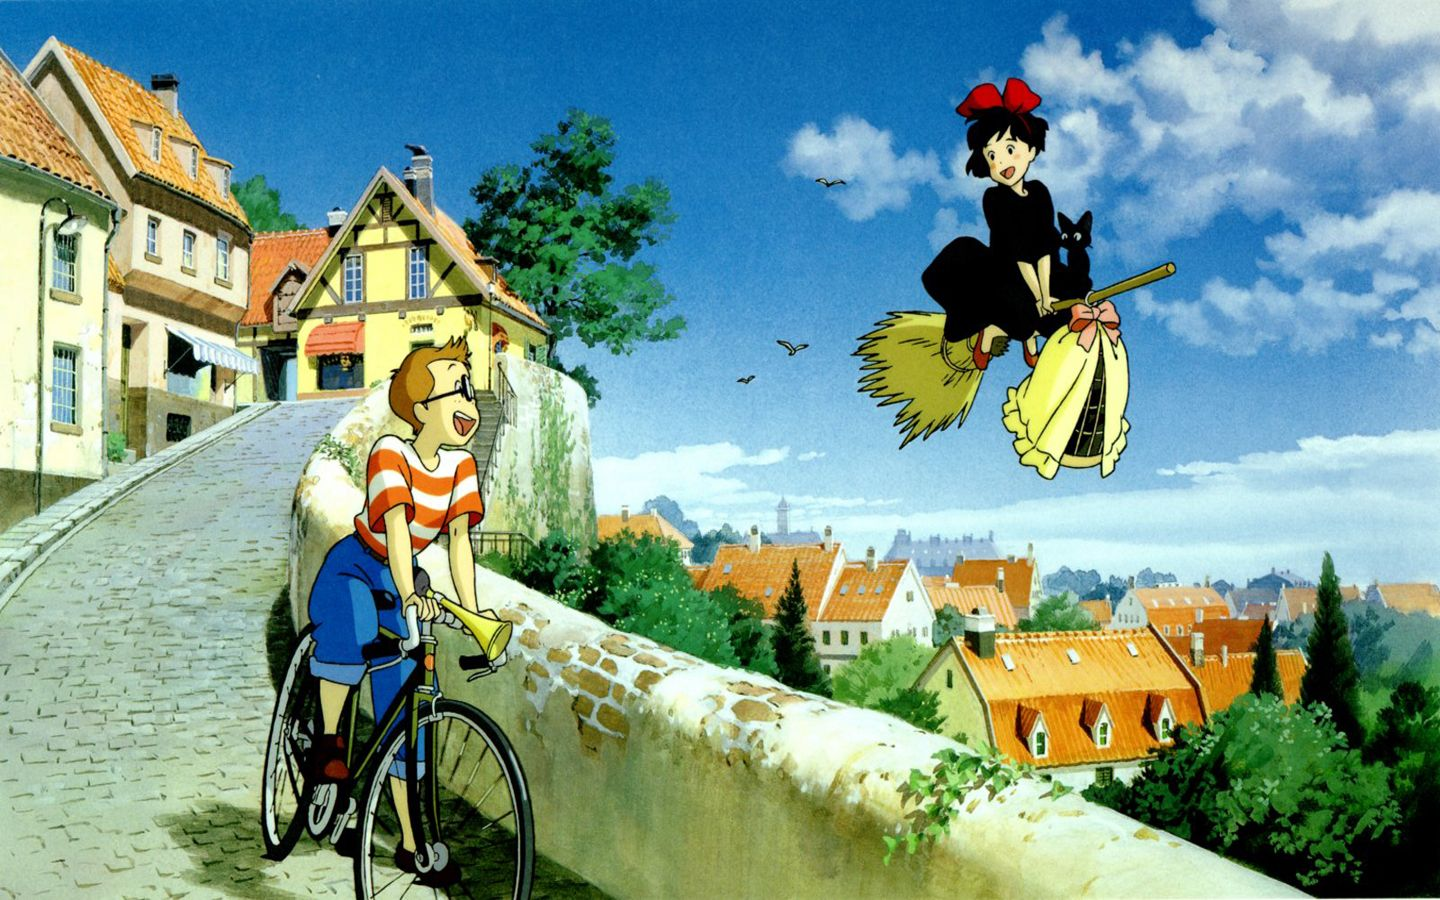 Kiki S Delivery Service Wallpaper With Images Studio Ghibli